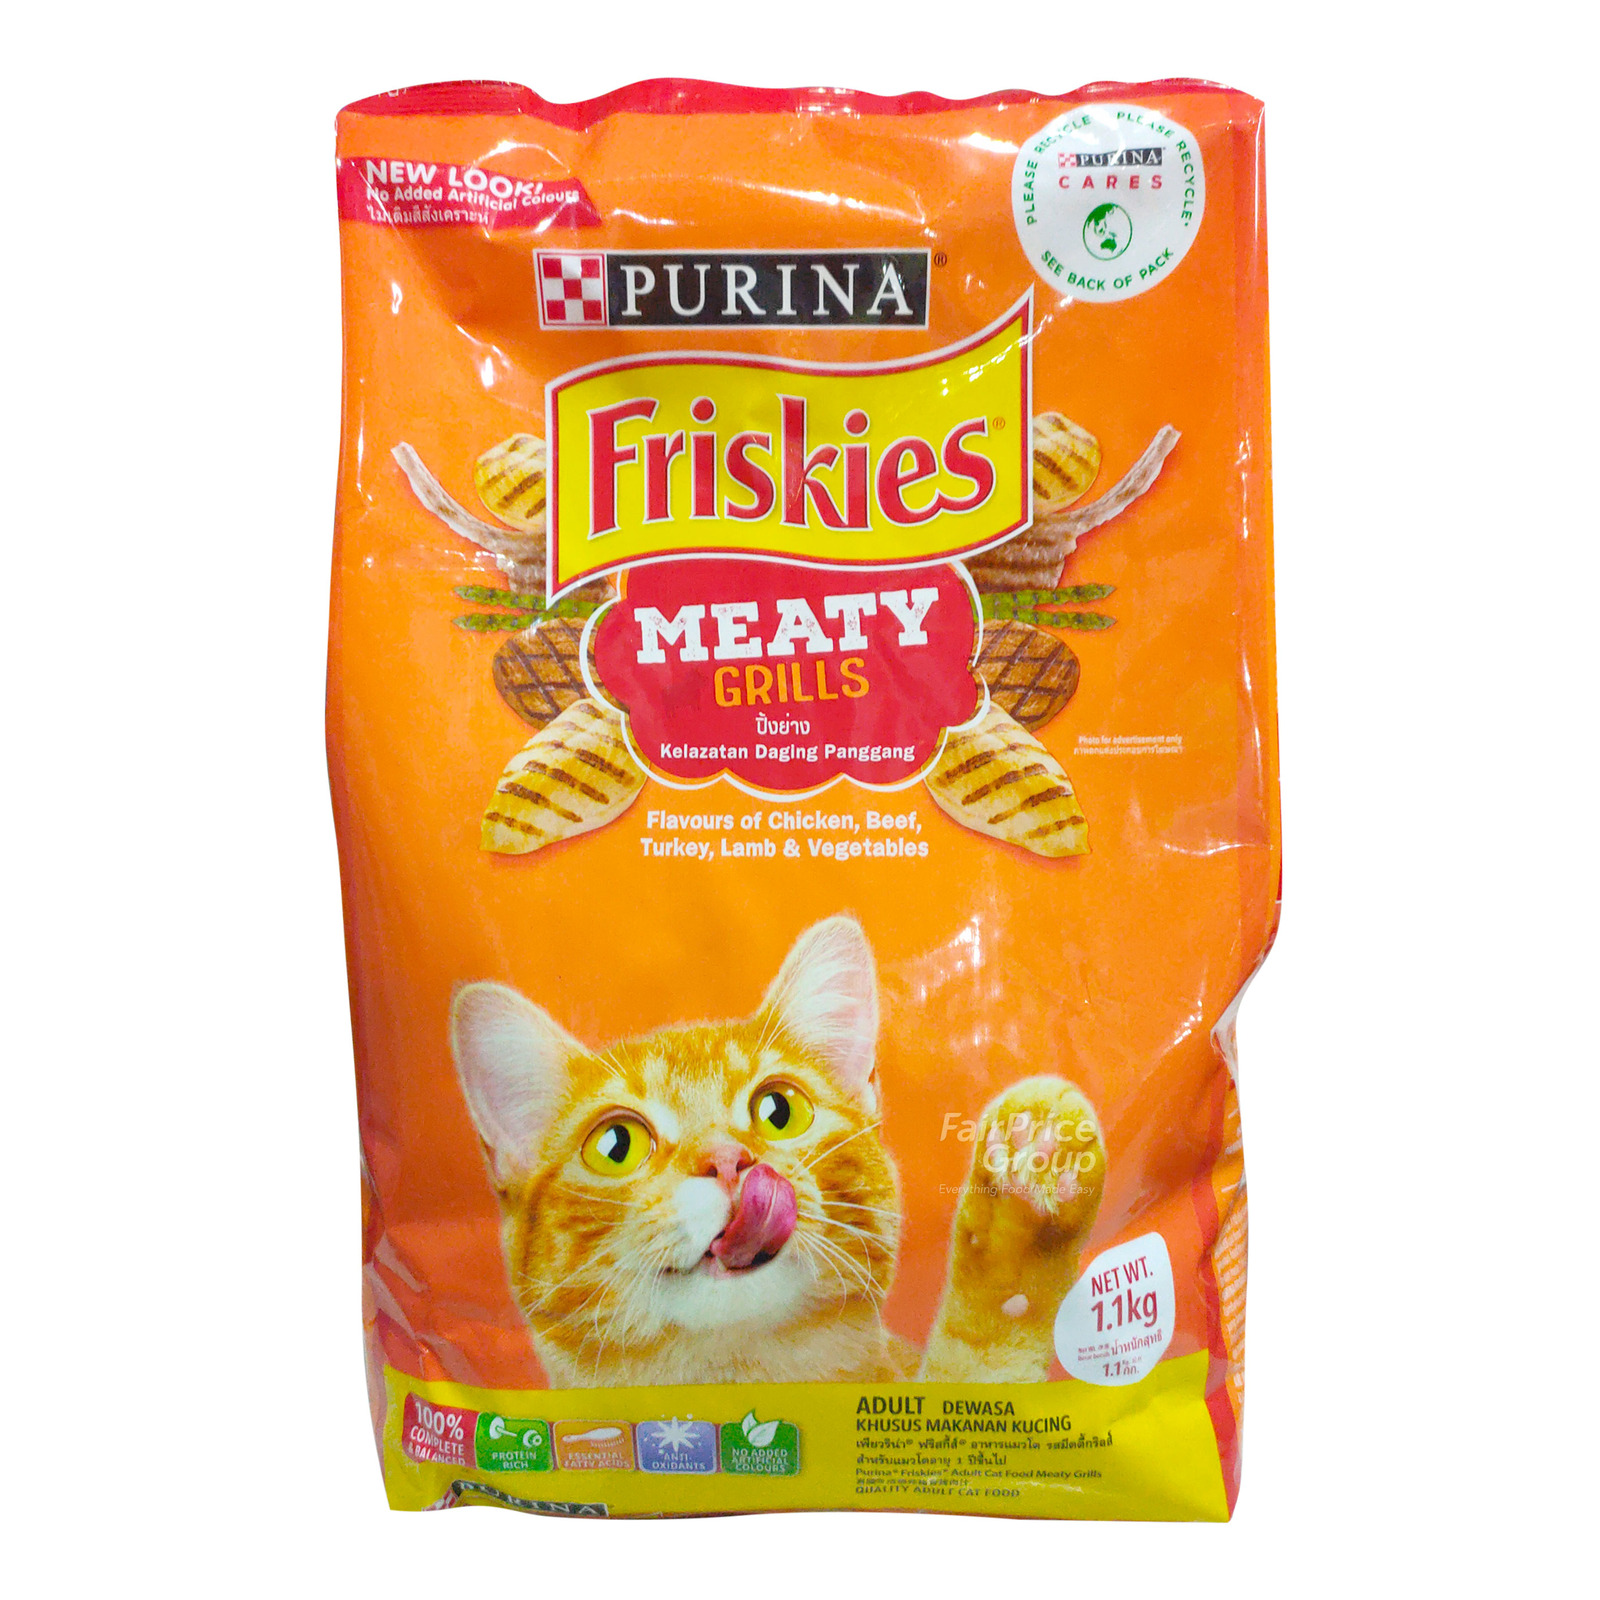 Friskies Delish Cat Dry Food - Meaty Grills